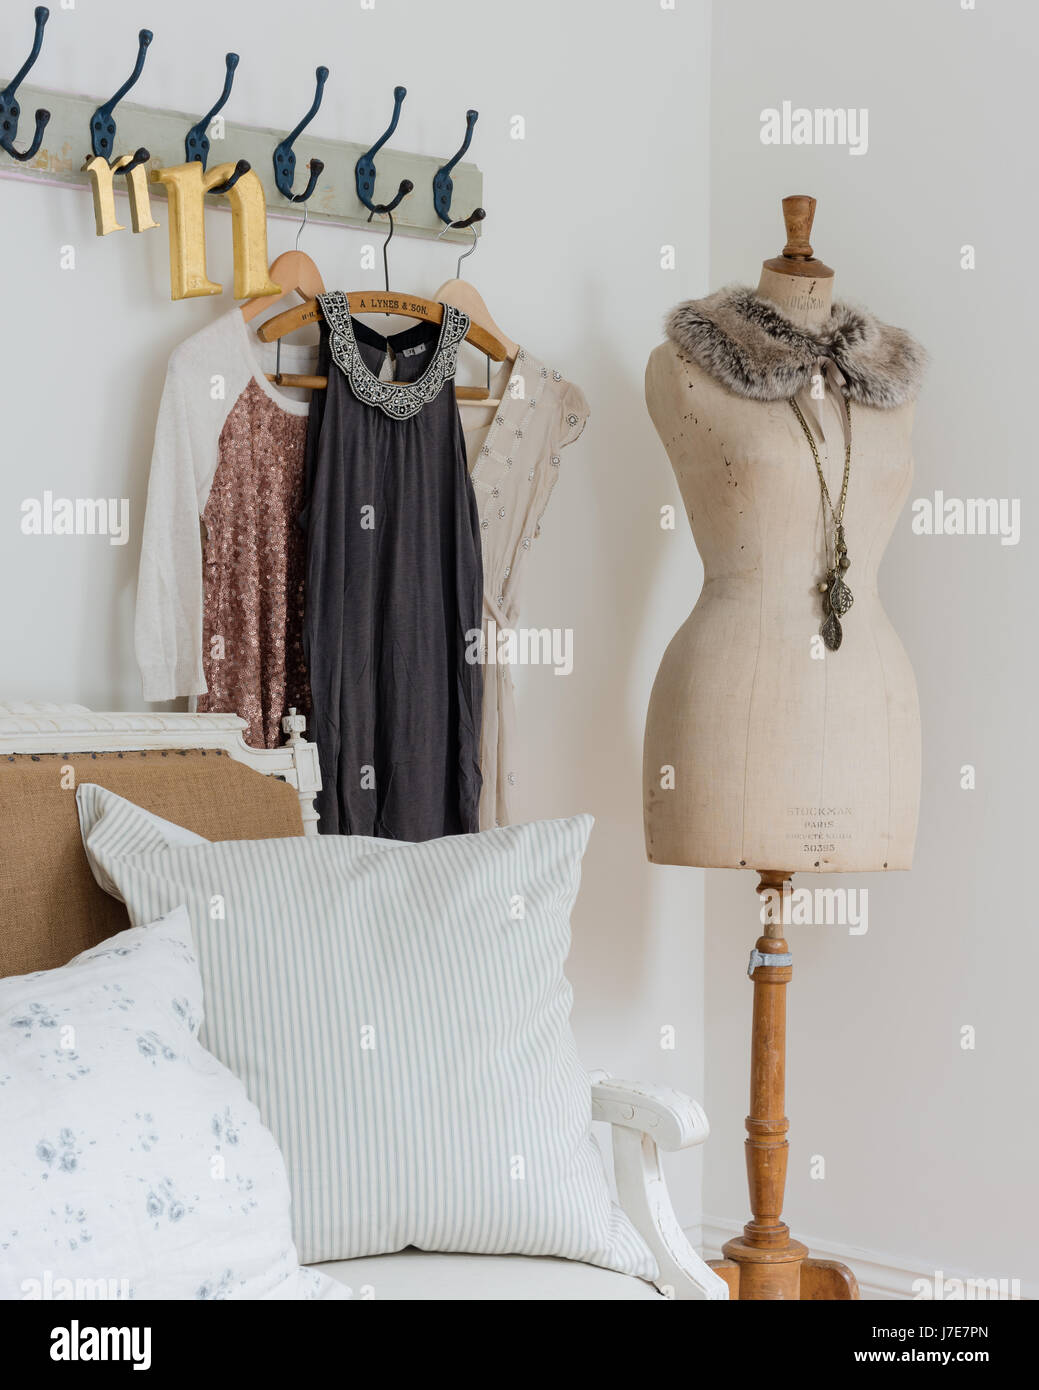 Gentil Elegant Mannequin In Bedroom With Rustic Coat Hooks And Cushions From  Cabbages U0026 Roses   Stock